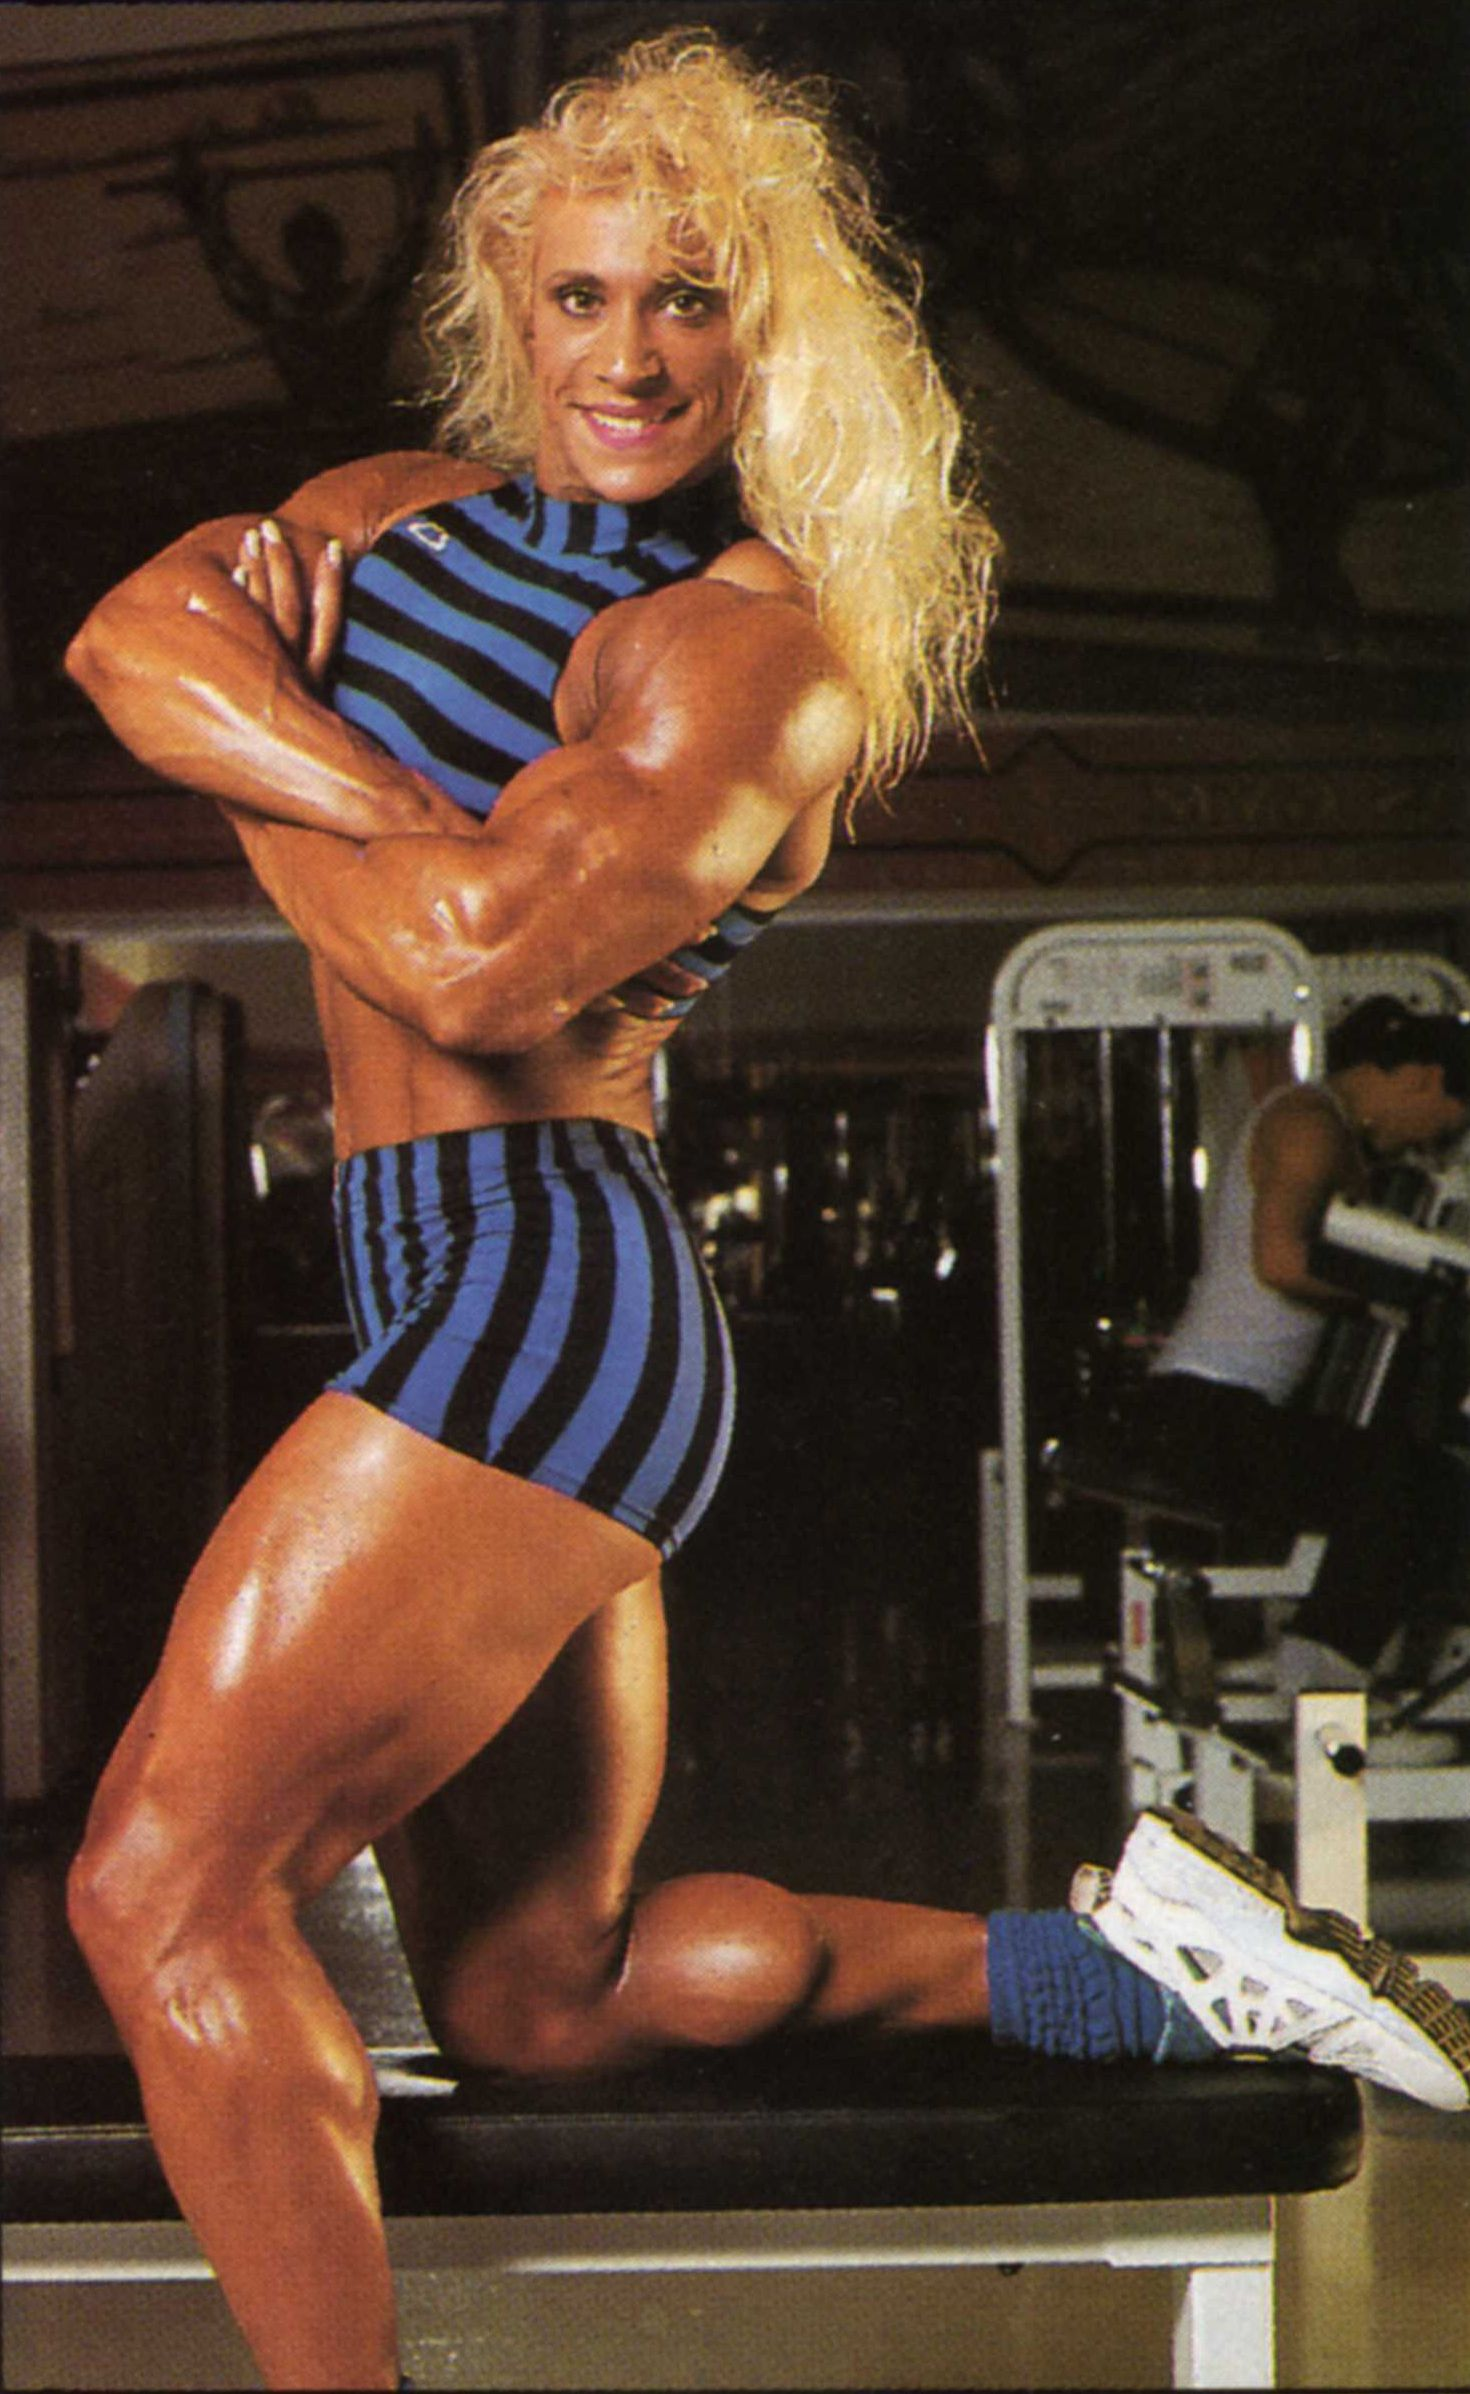 femuscleblog – A tribute to athletic and muscular women